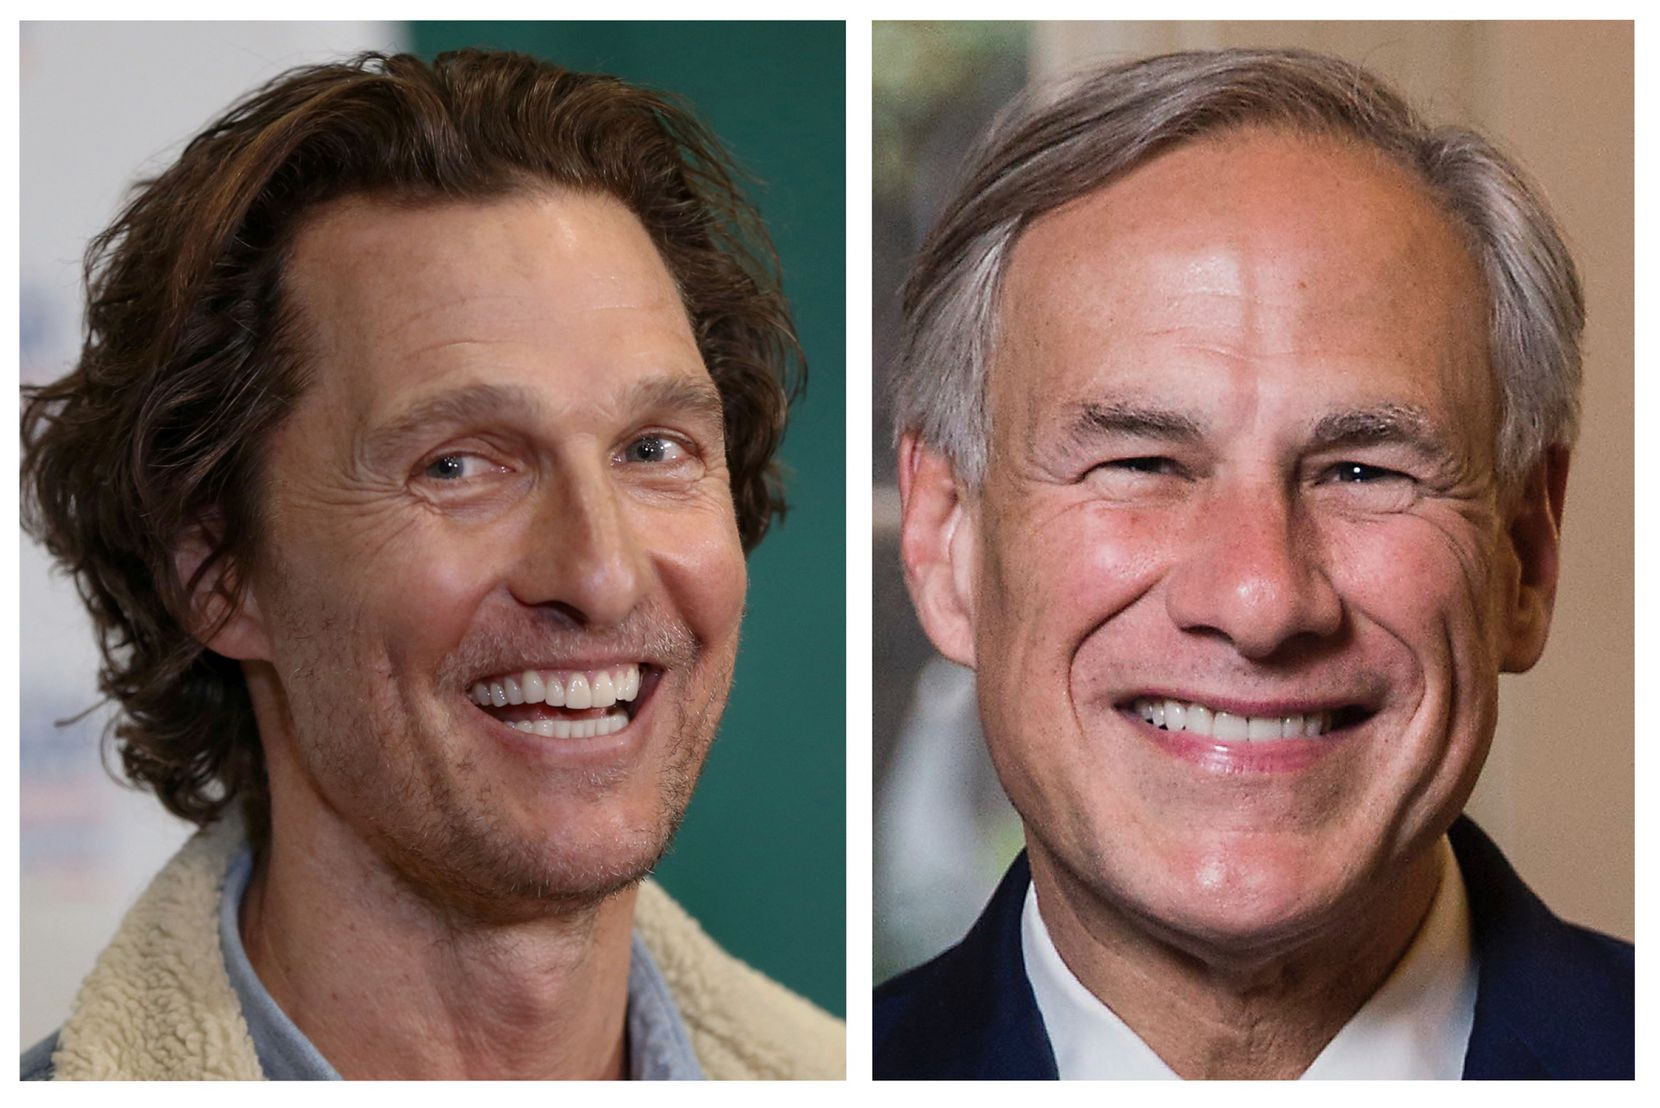 Actor and author Matthew McConaughey and Texas Governor Greg Abbott.